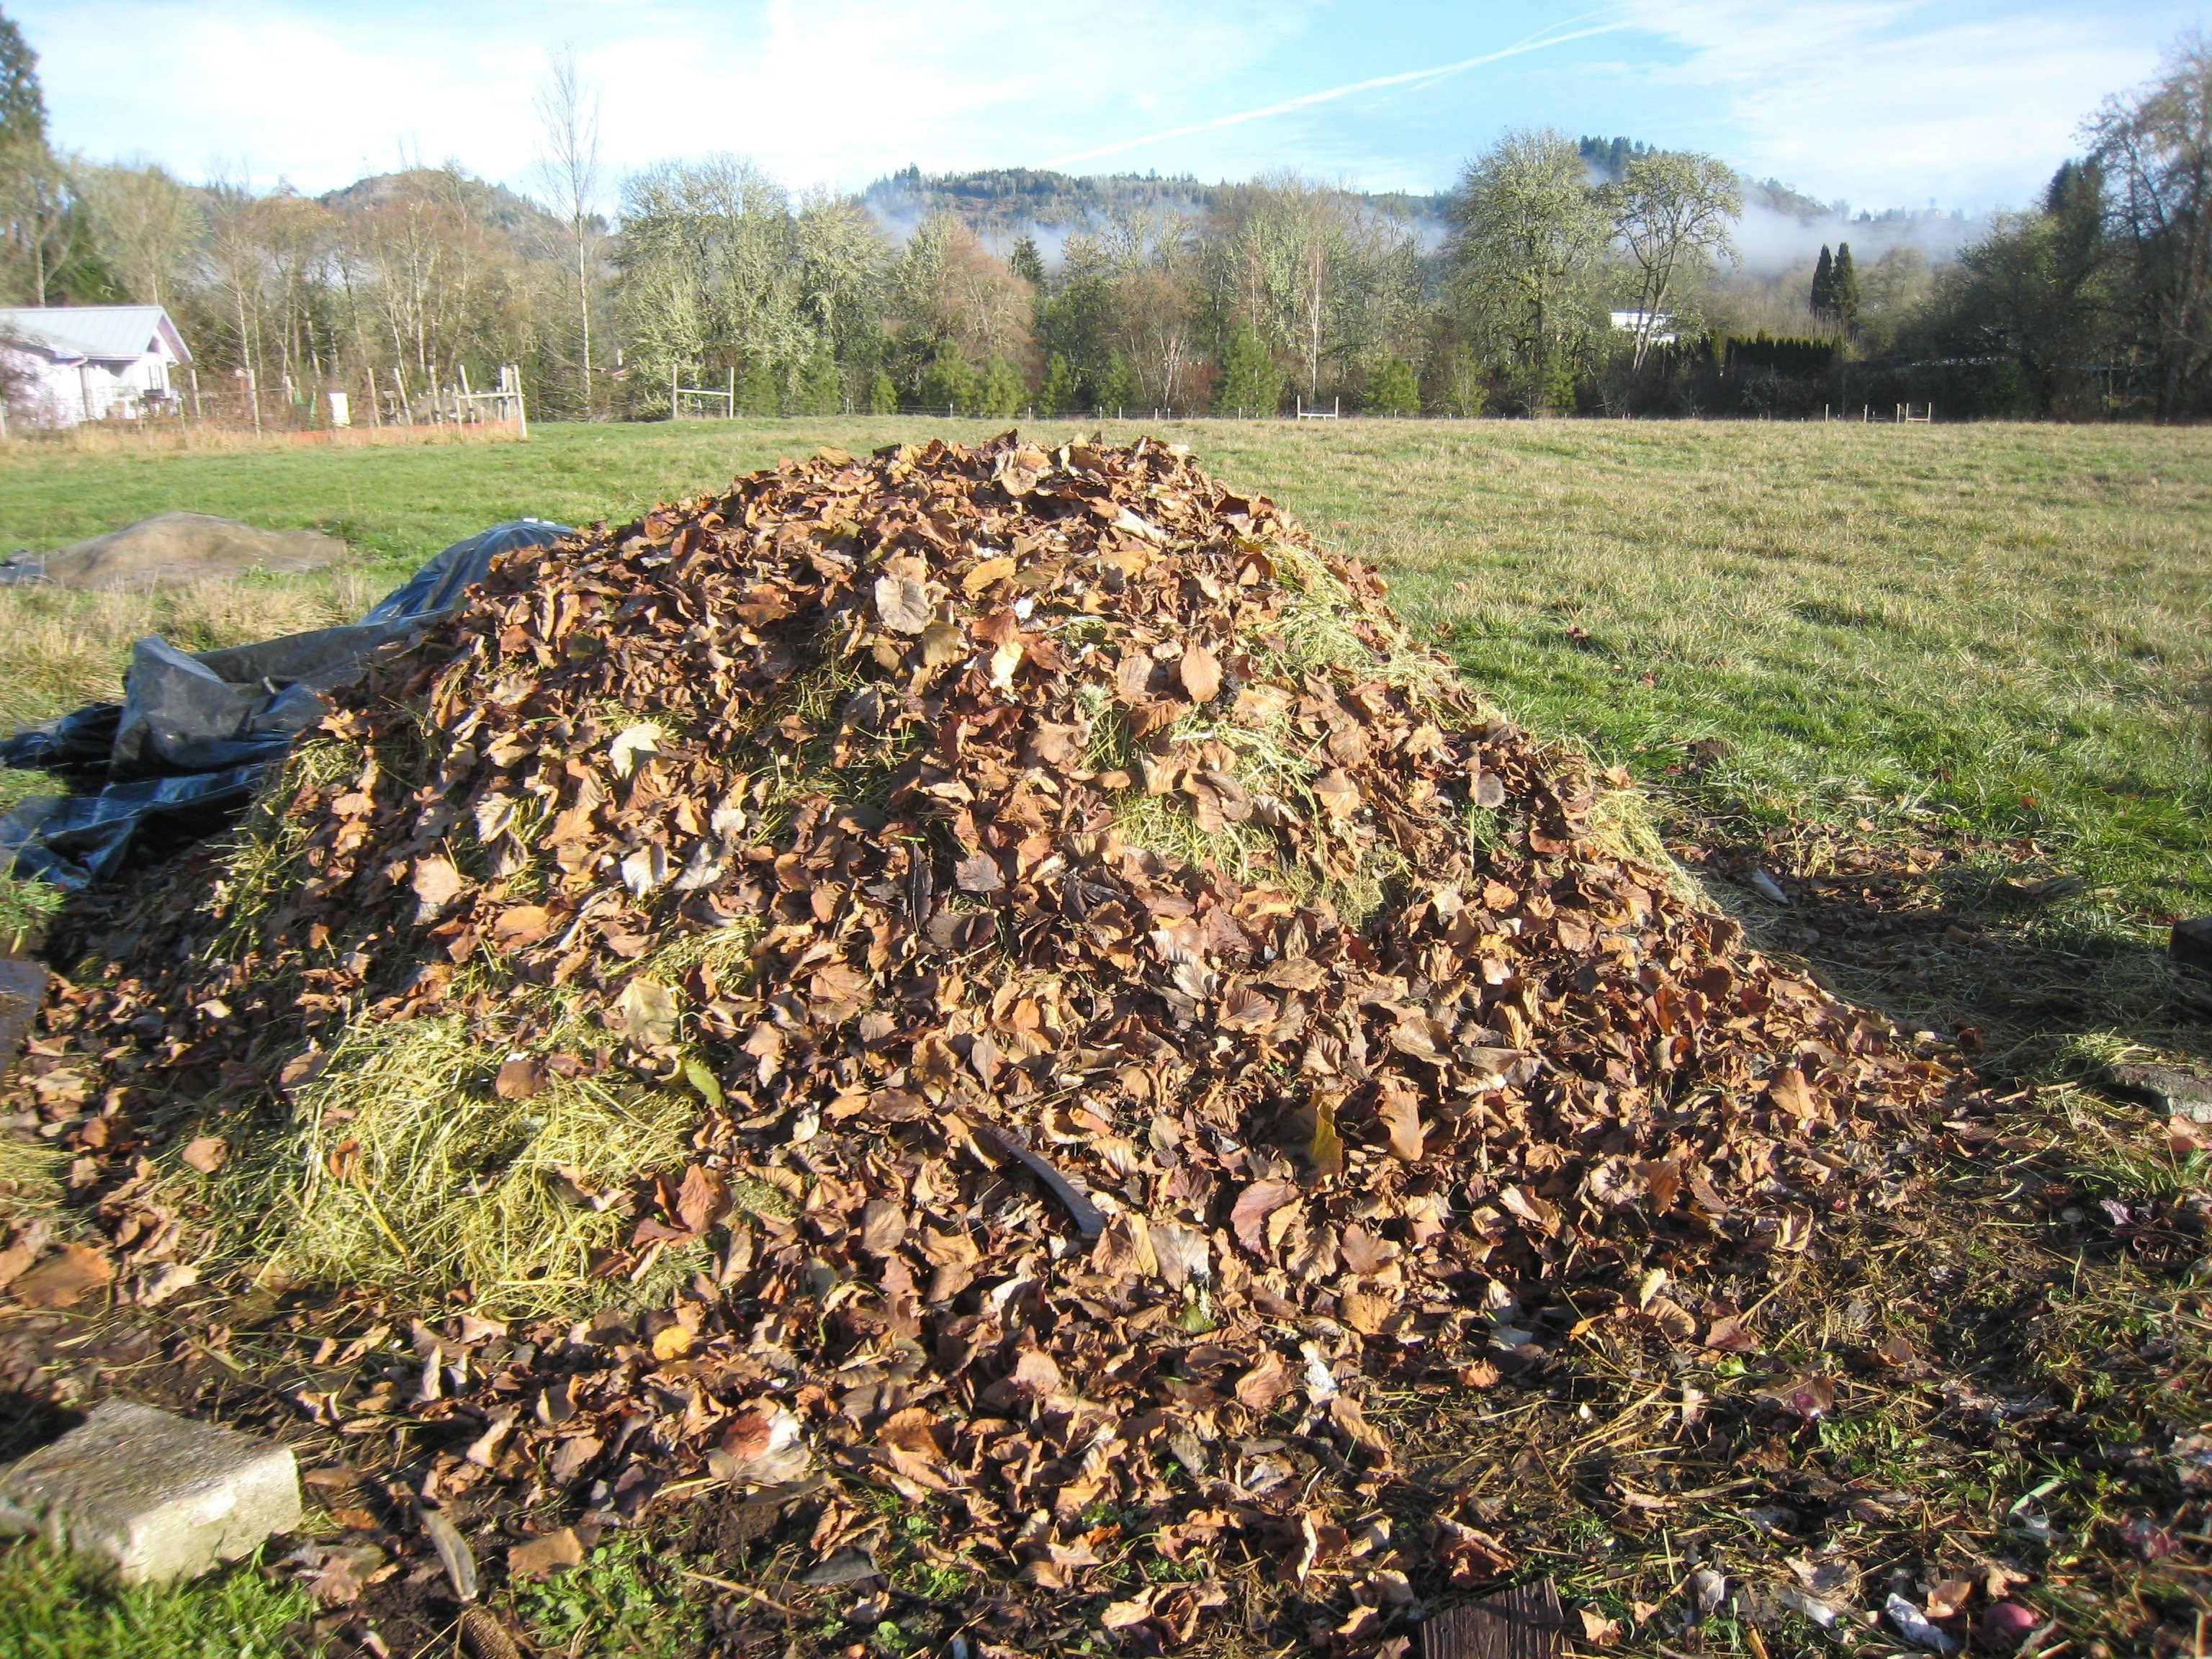 Photo of a compost pile in a field.